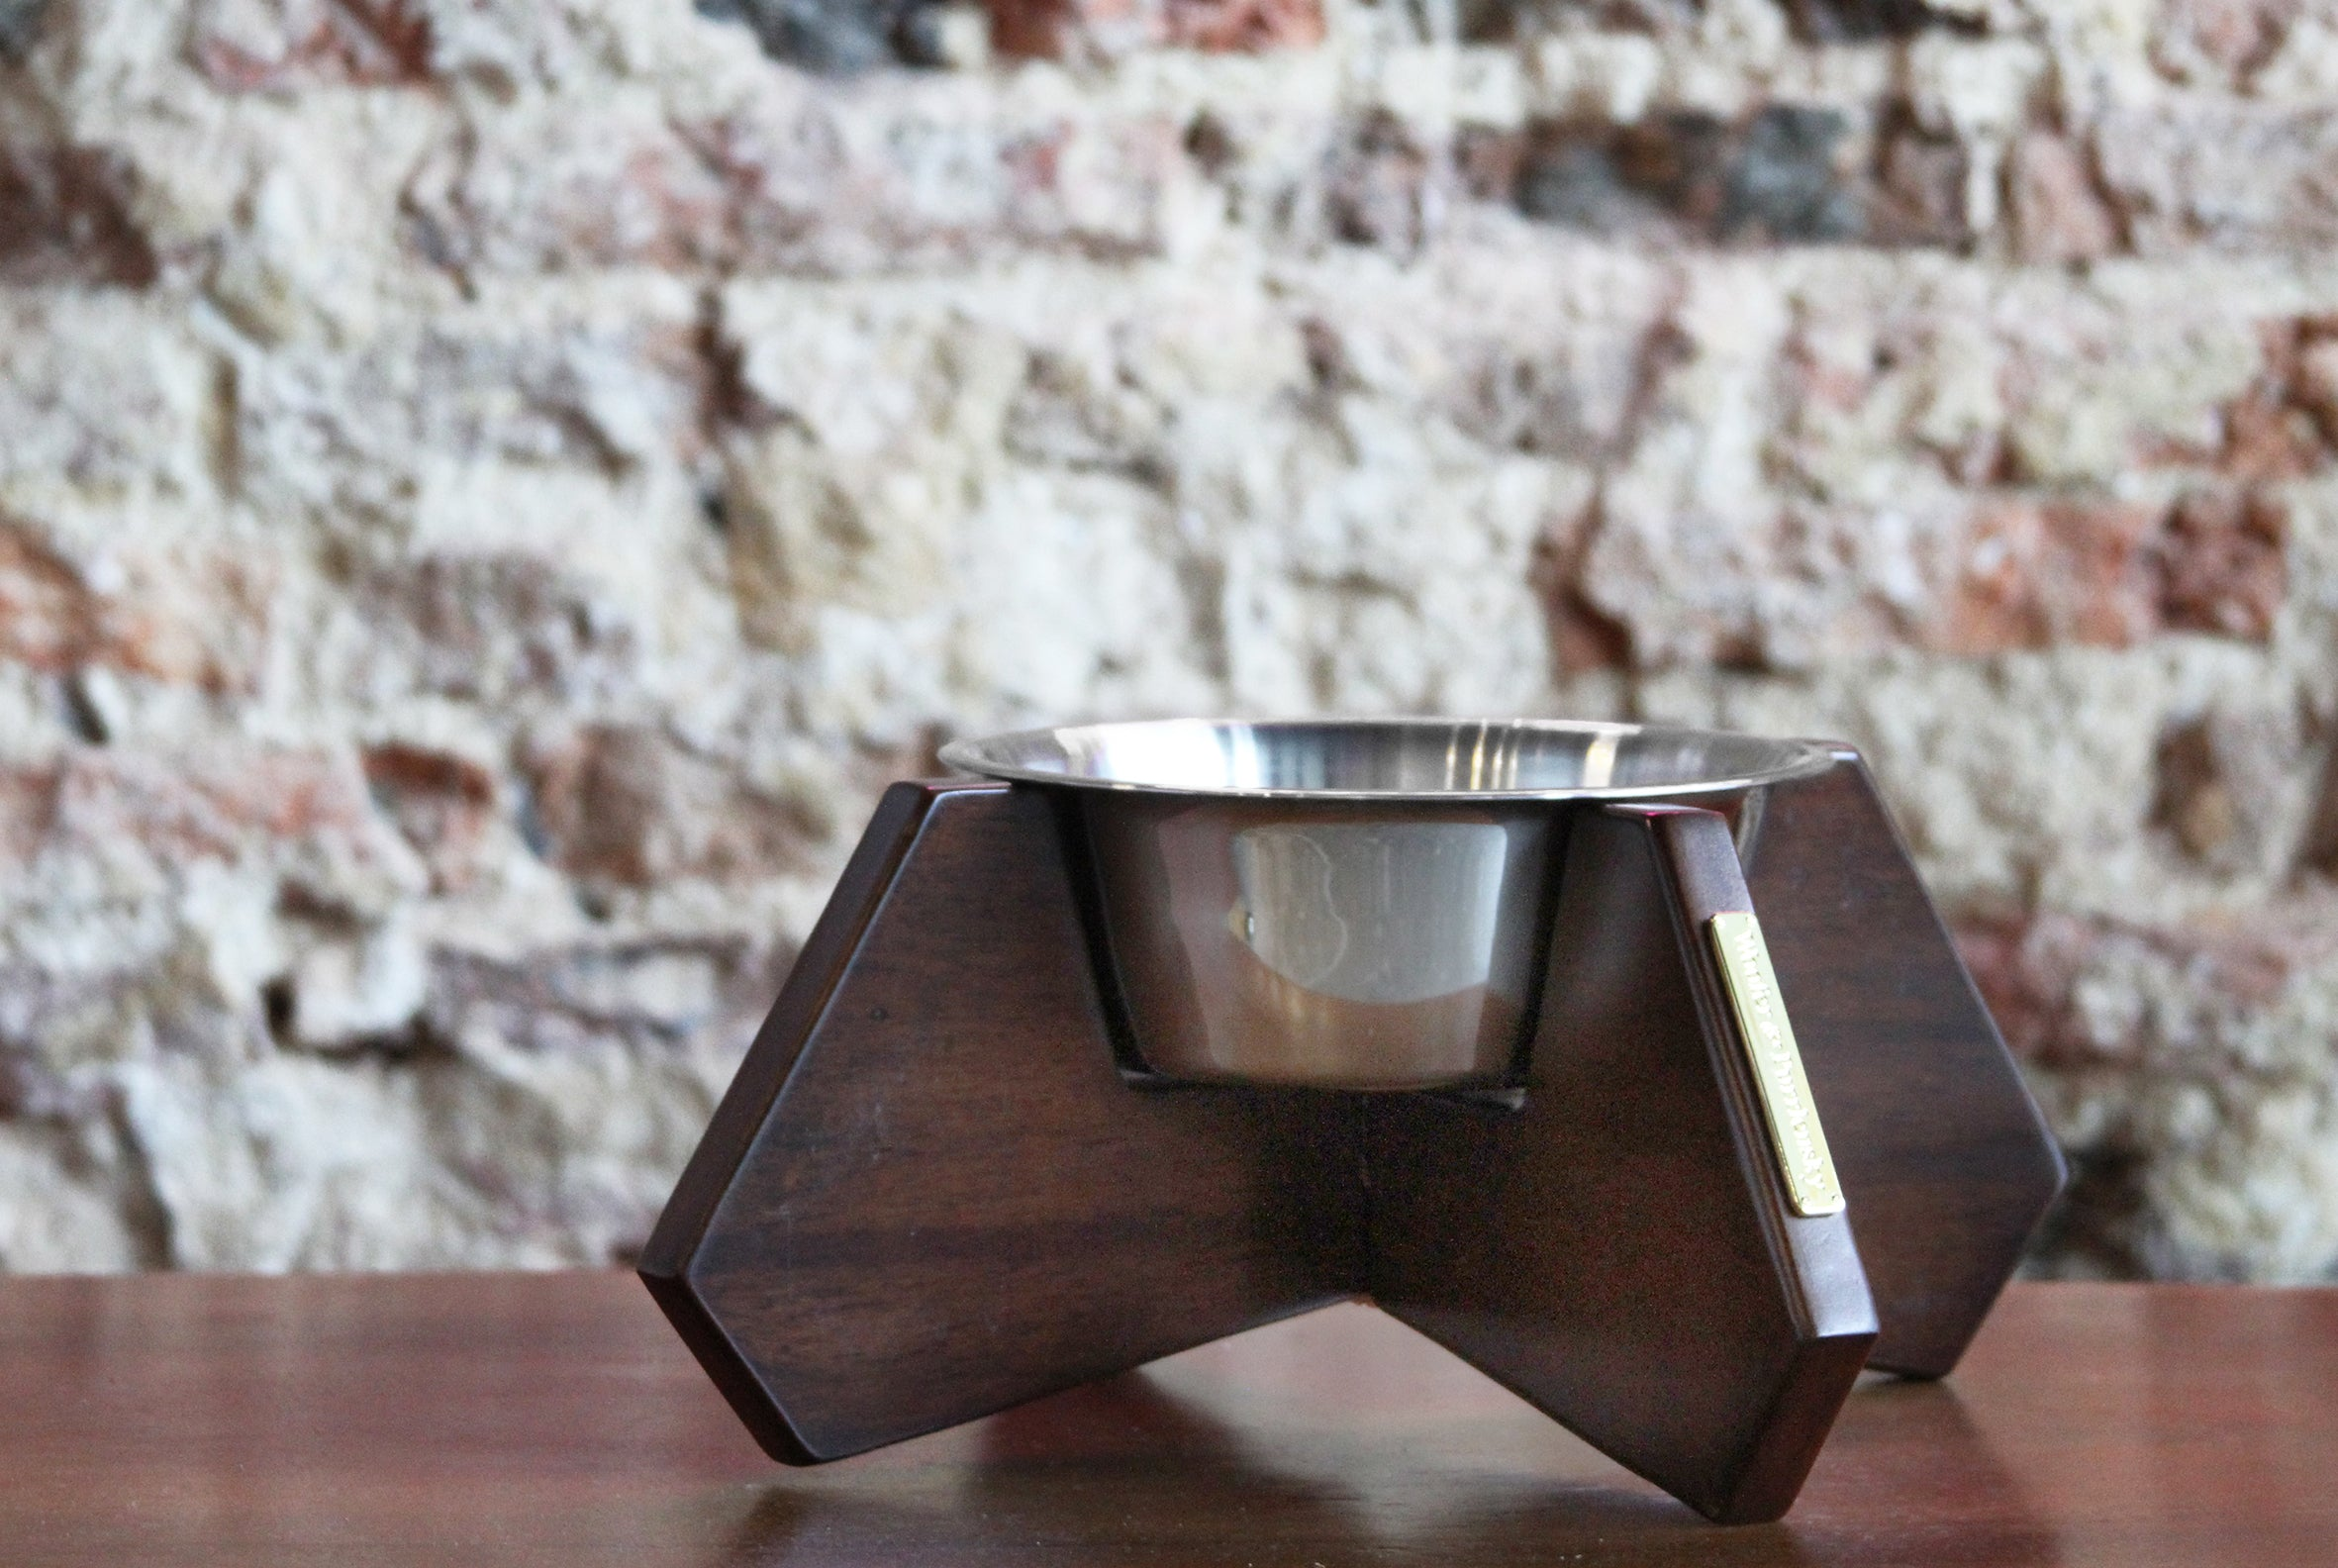 Xandro Natural Wooden Bowl Stand (Stainless Steel Bowl included)